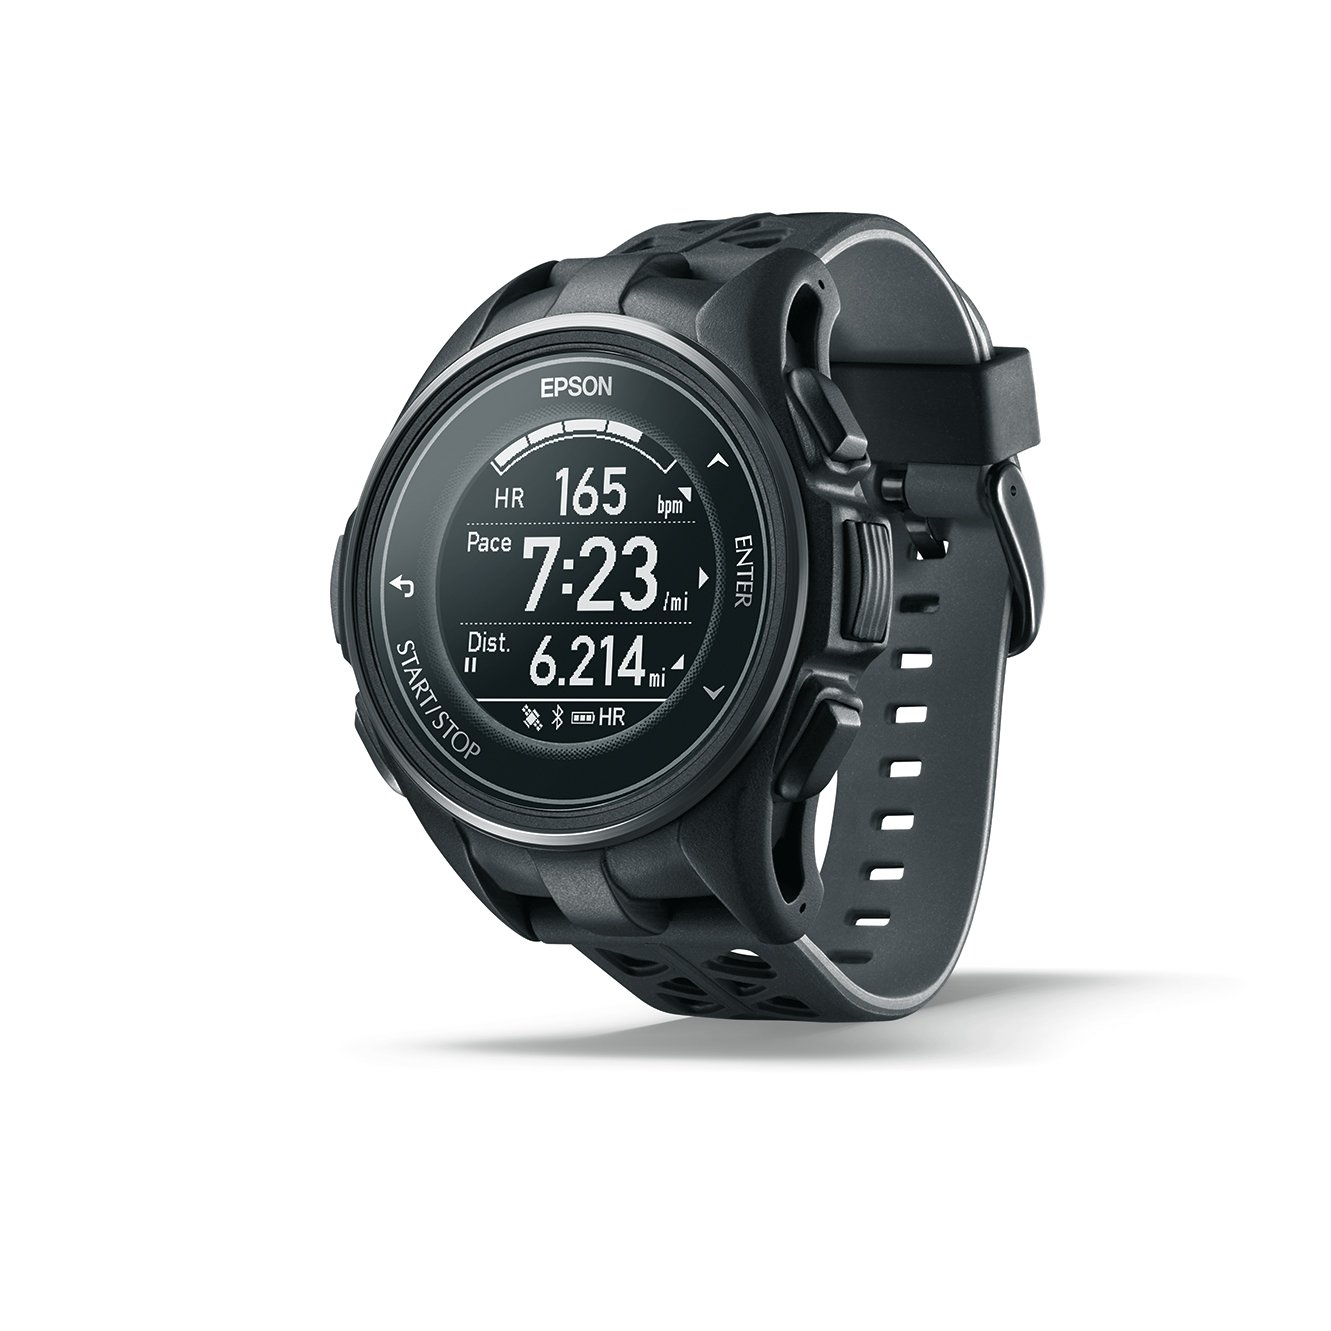 Epson ProSense 307 GPS Multisport Watch with Heart Rate and EasyView Display - Black